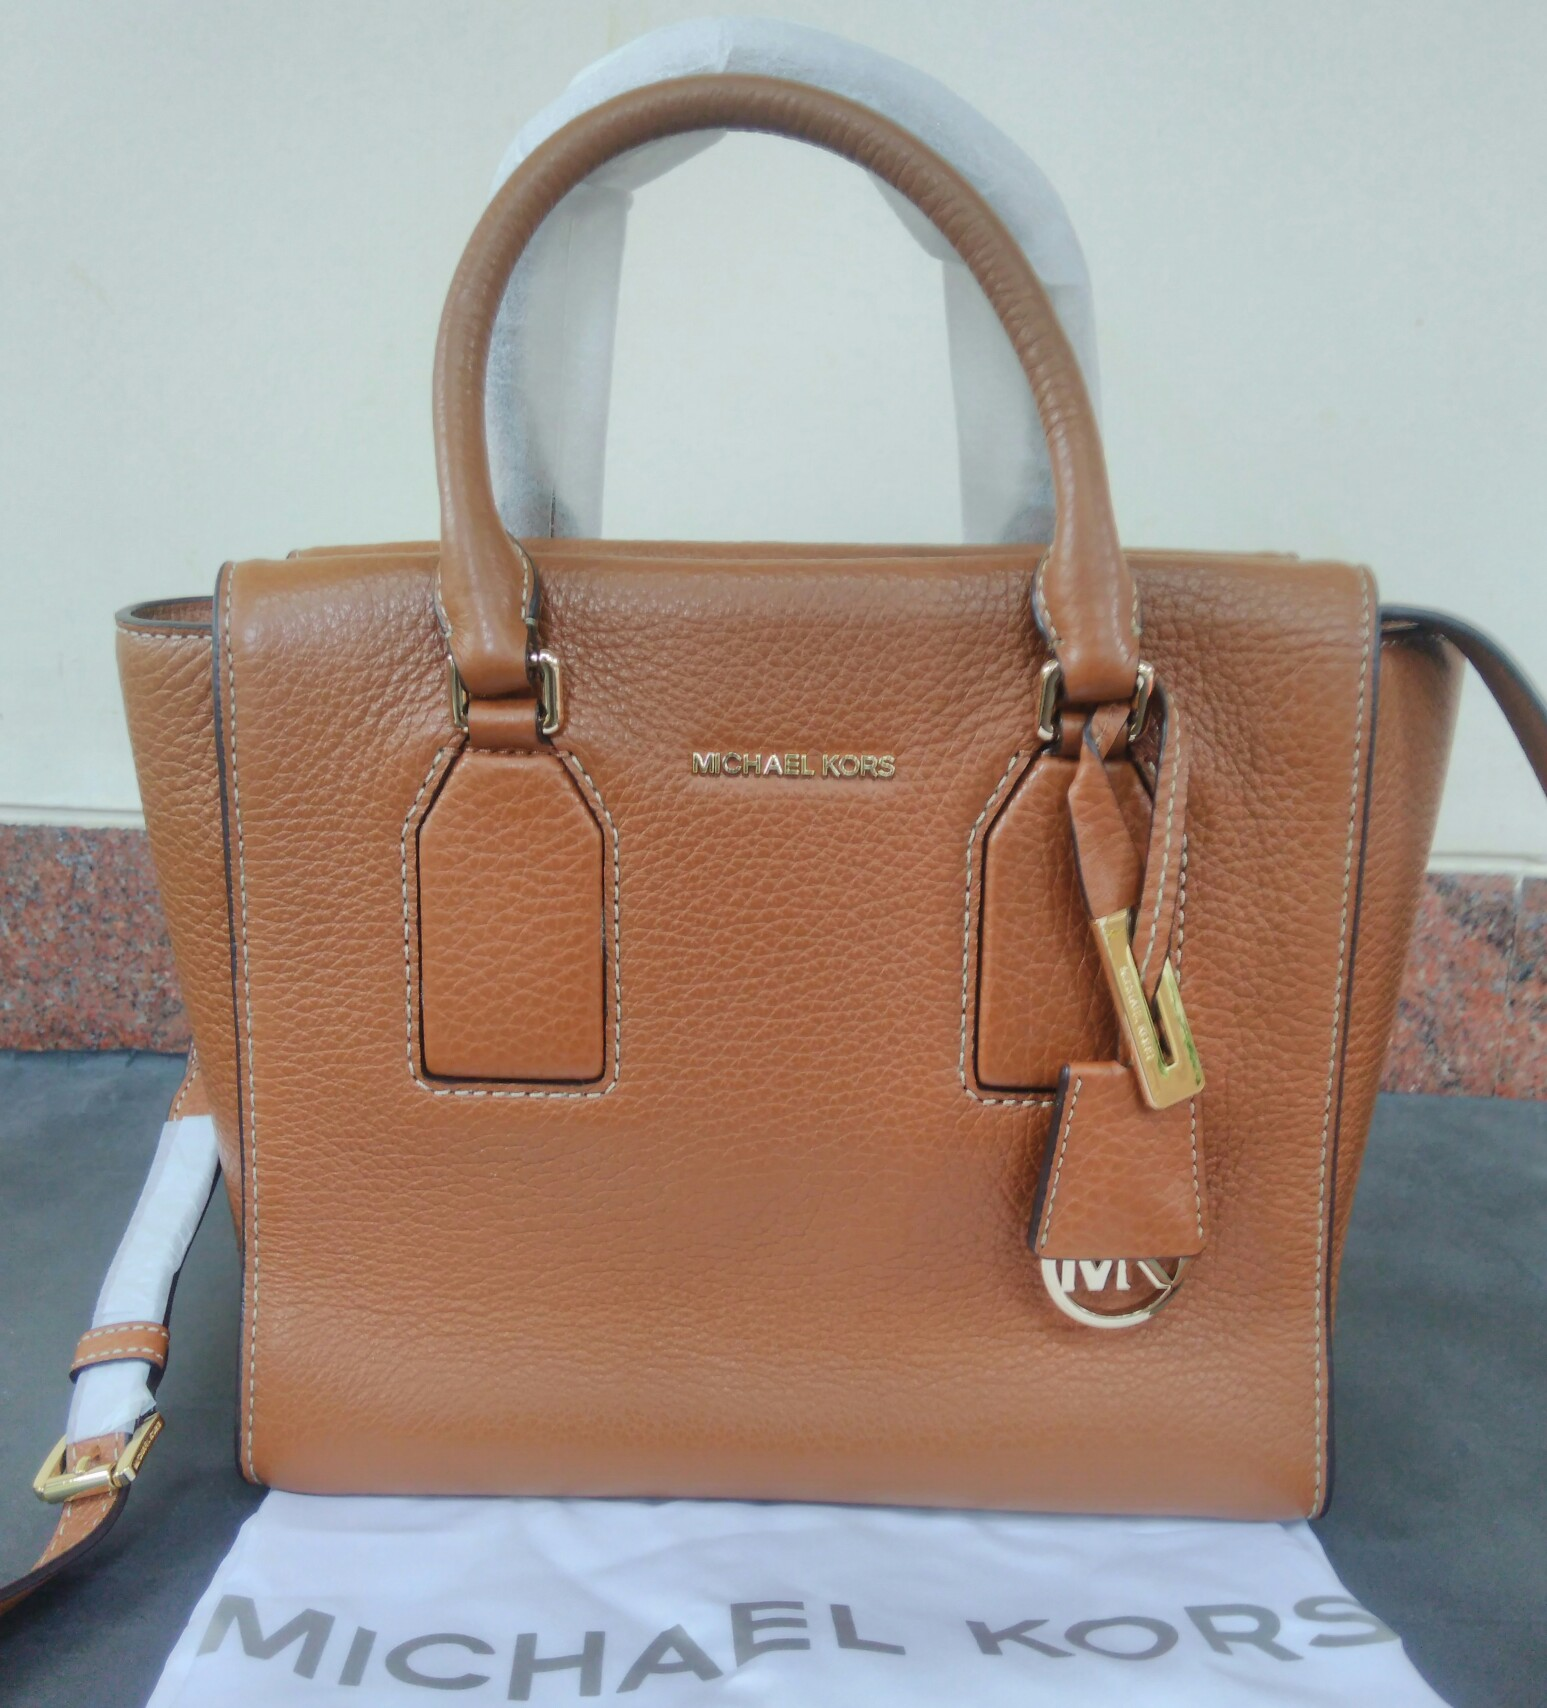 dacd0113ea3b Michael Kors Selby Medium Leather Satchel Walnut. View detailed images (7)